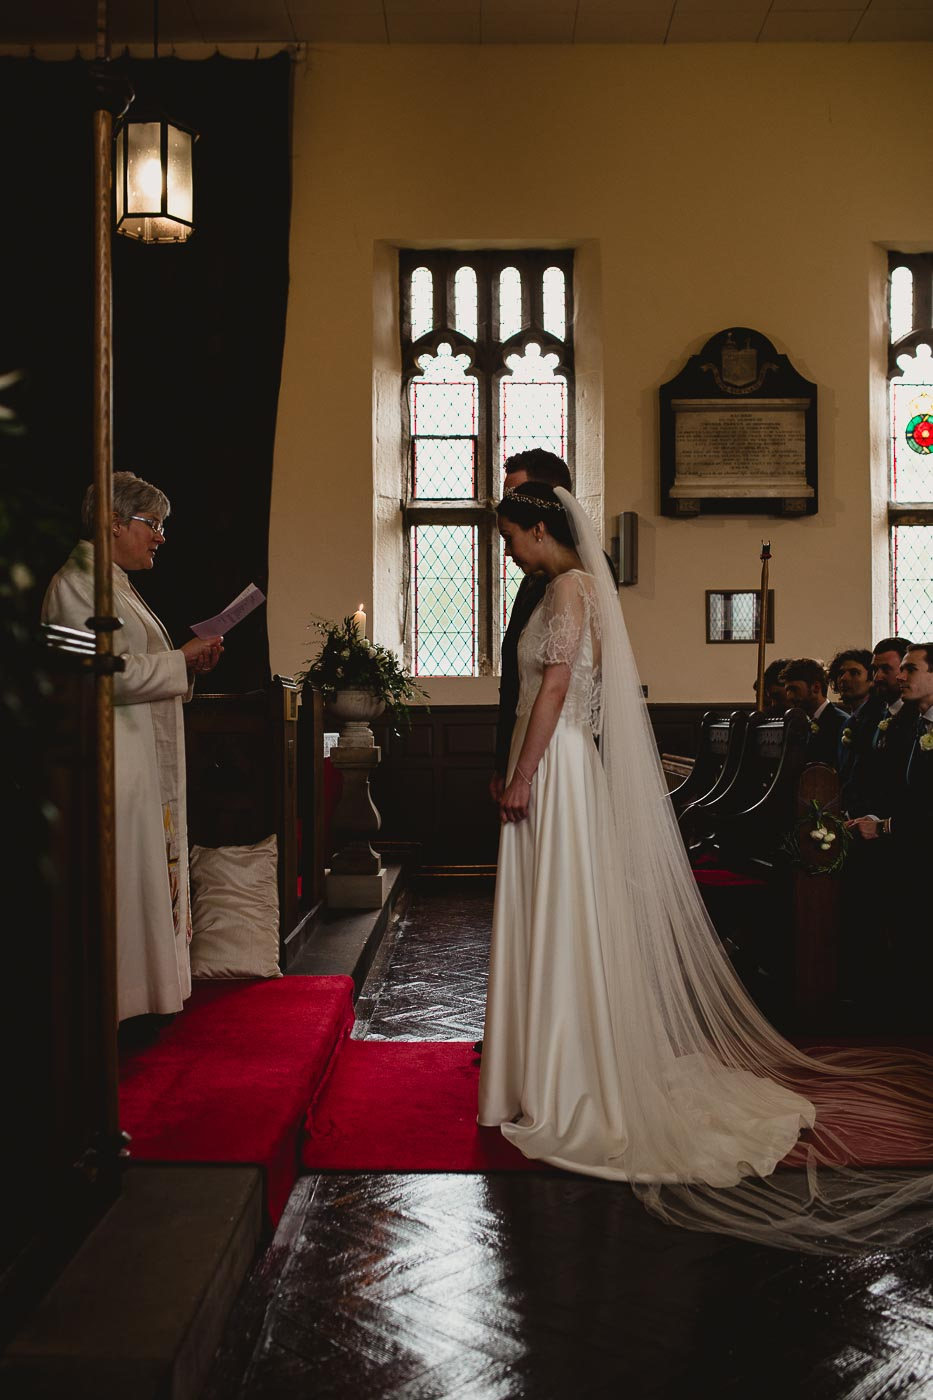 Photograph of bride and groom from the side during the church wedding ceremony, Candid wedding photography